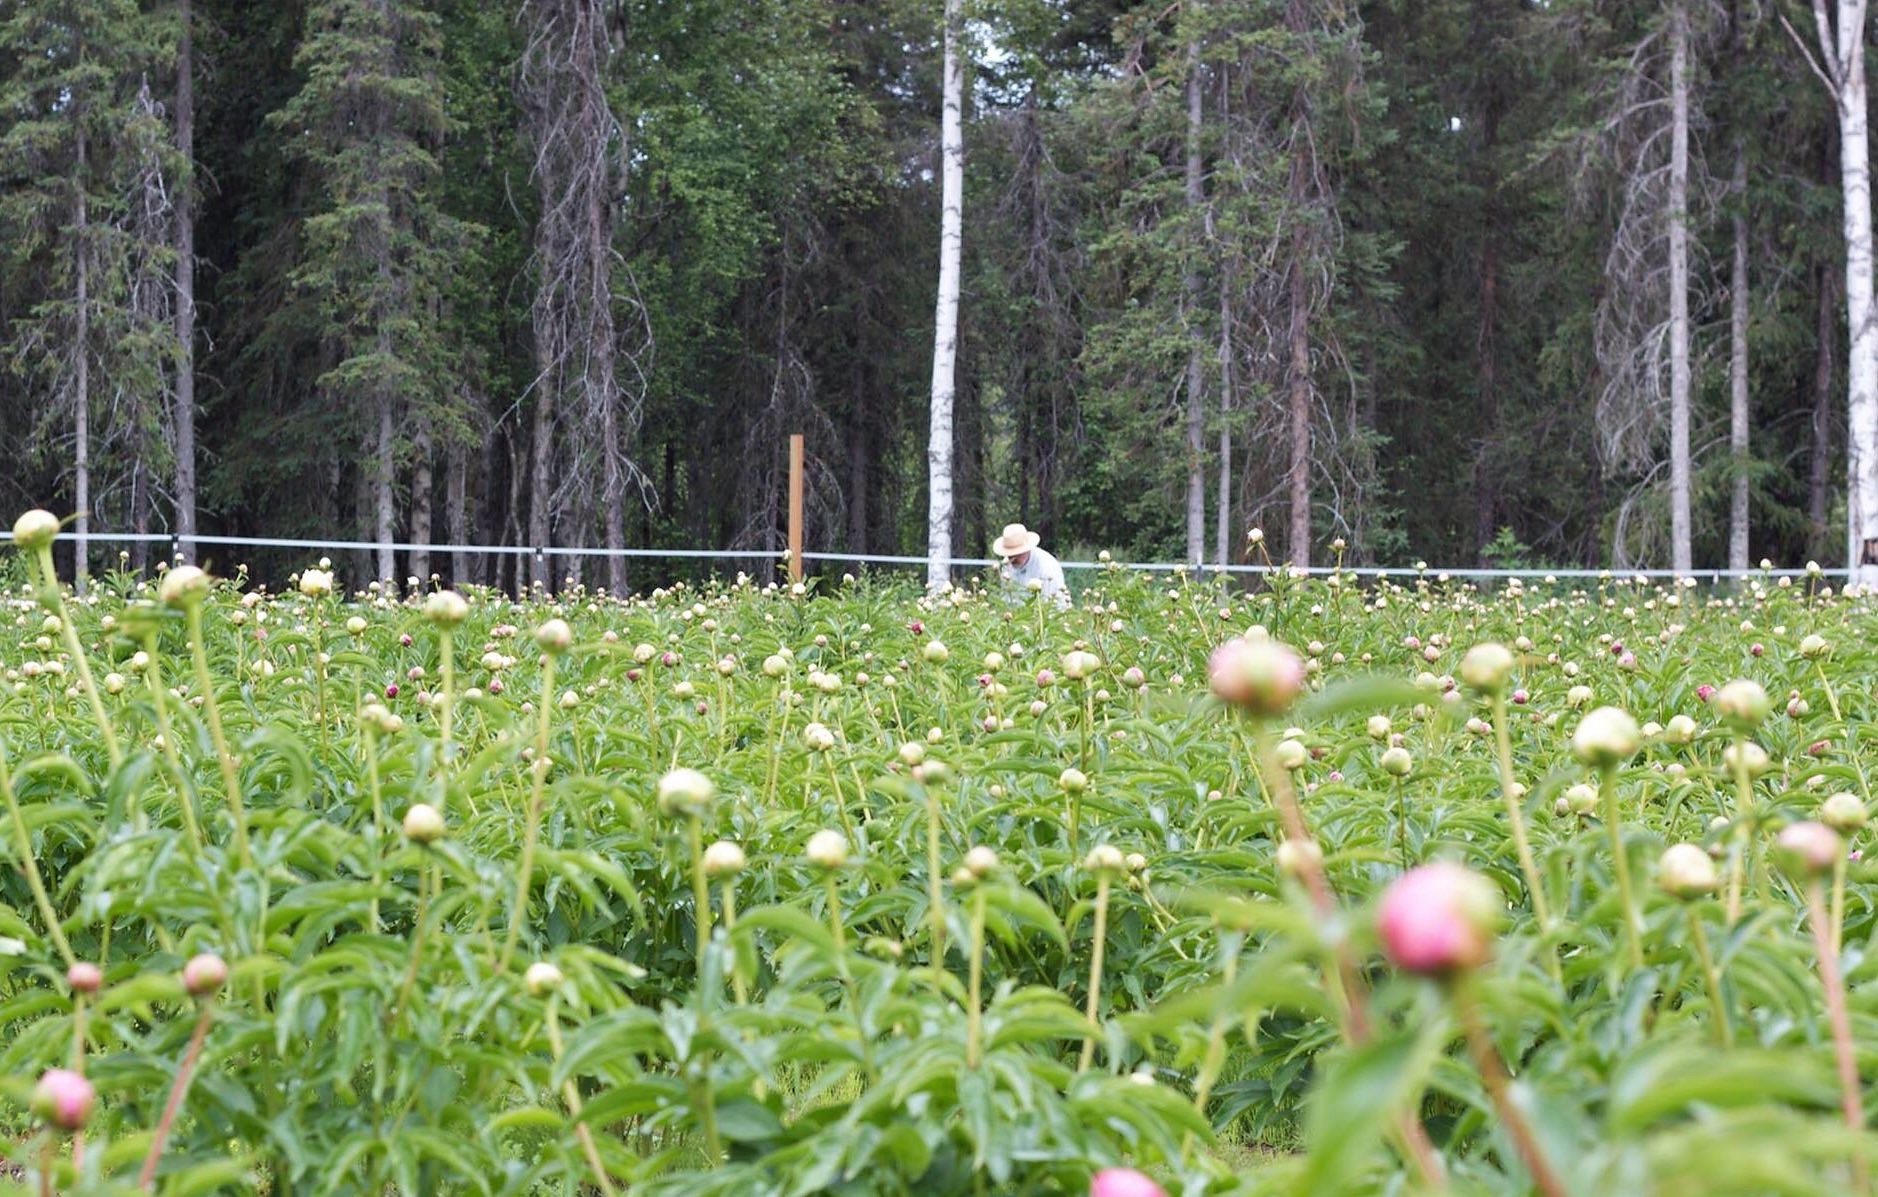 Giggly Roots Gardens, a Willow-based farm part of the Alaska Peony Cooperative. (Photo courtesy of the Alaska Peony Cooperative).